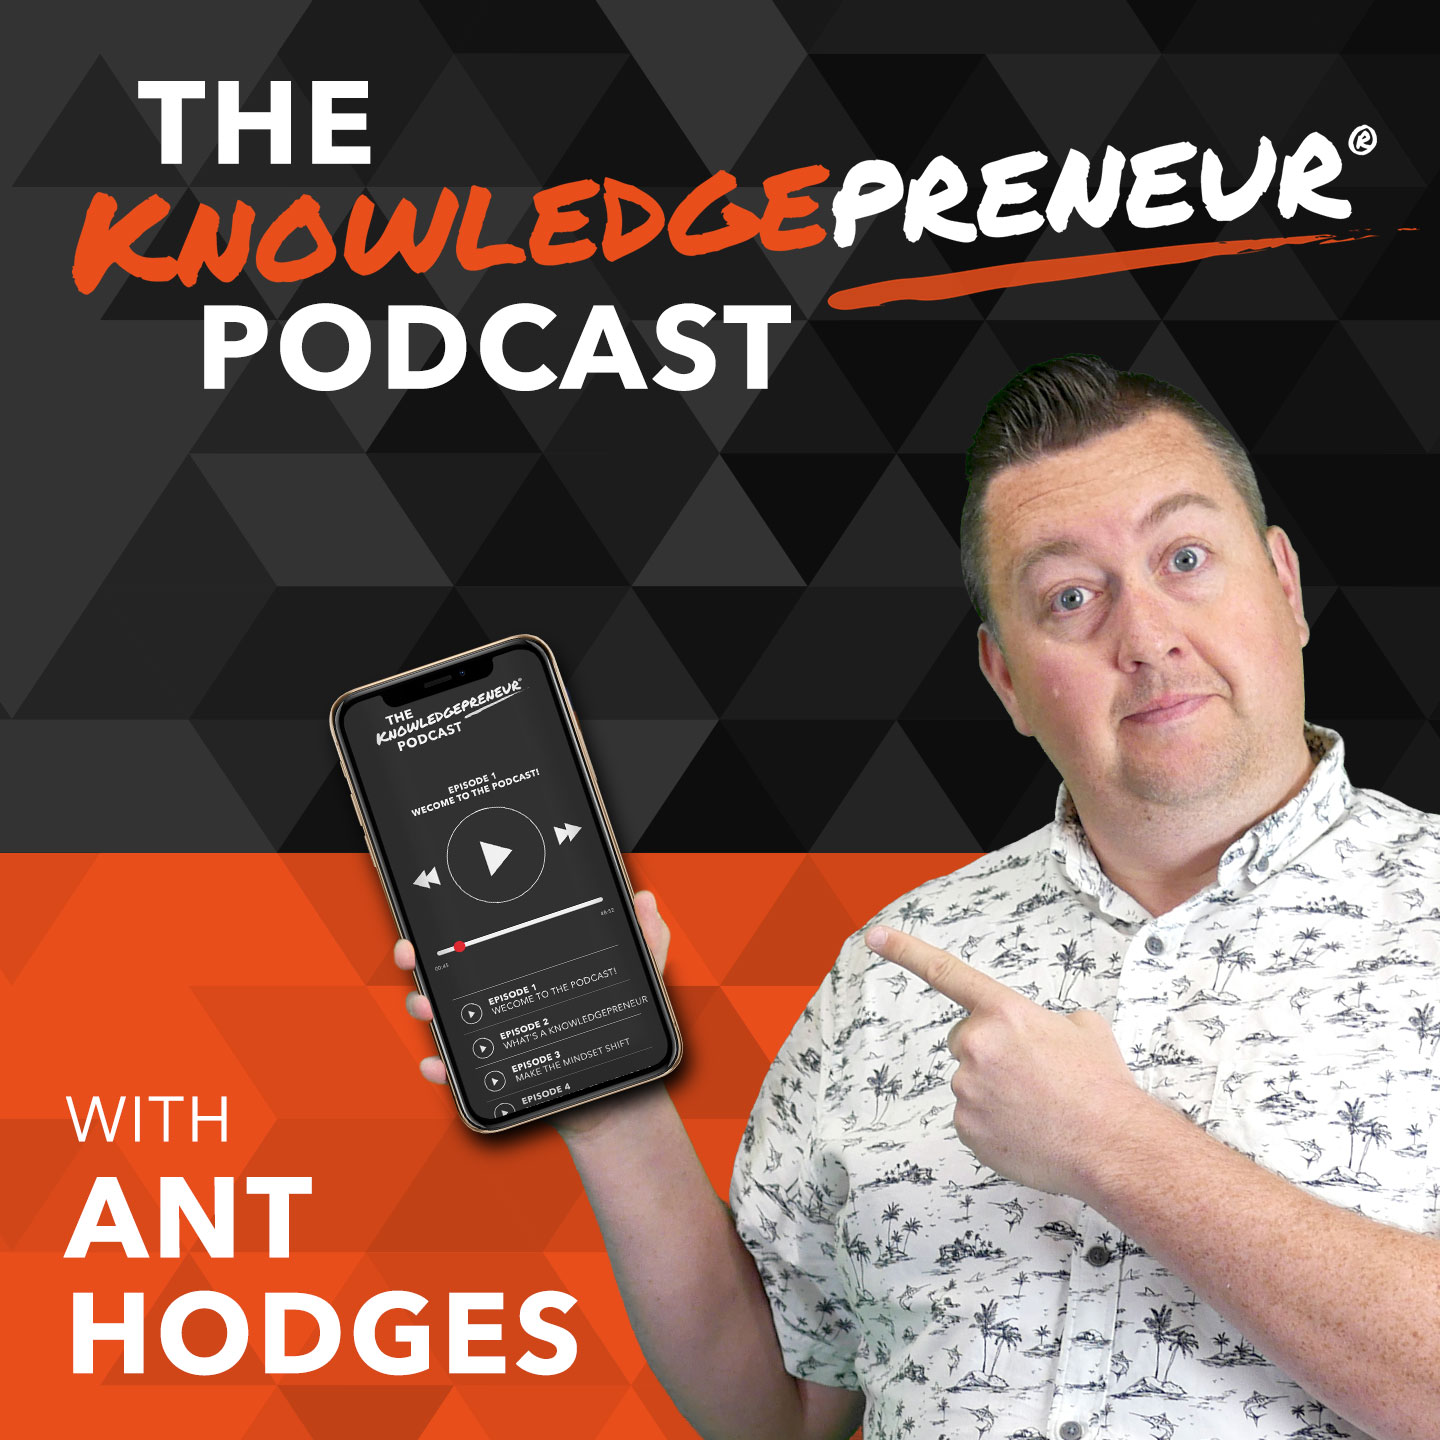 The Knowledgepreneur® Podcast show image